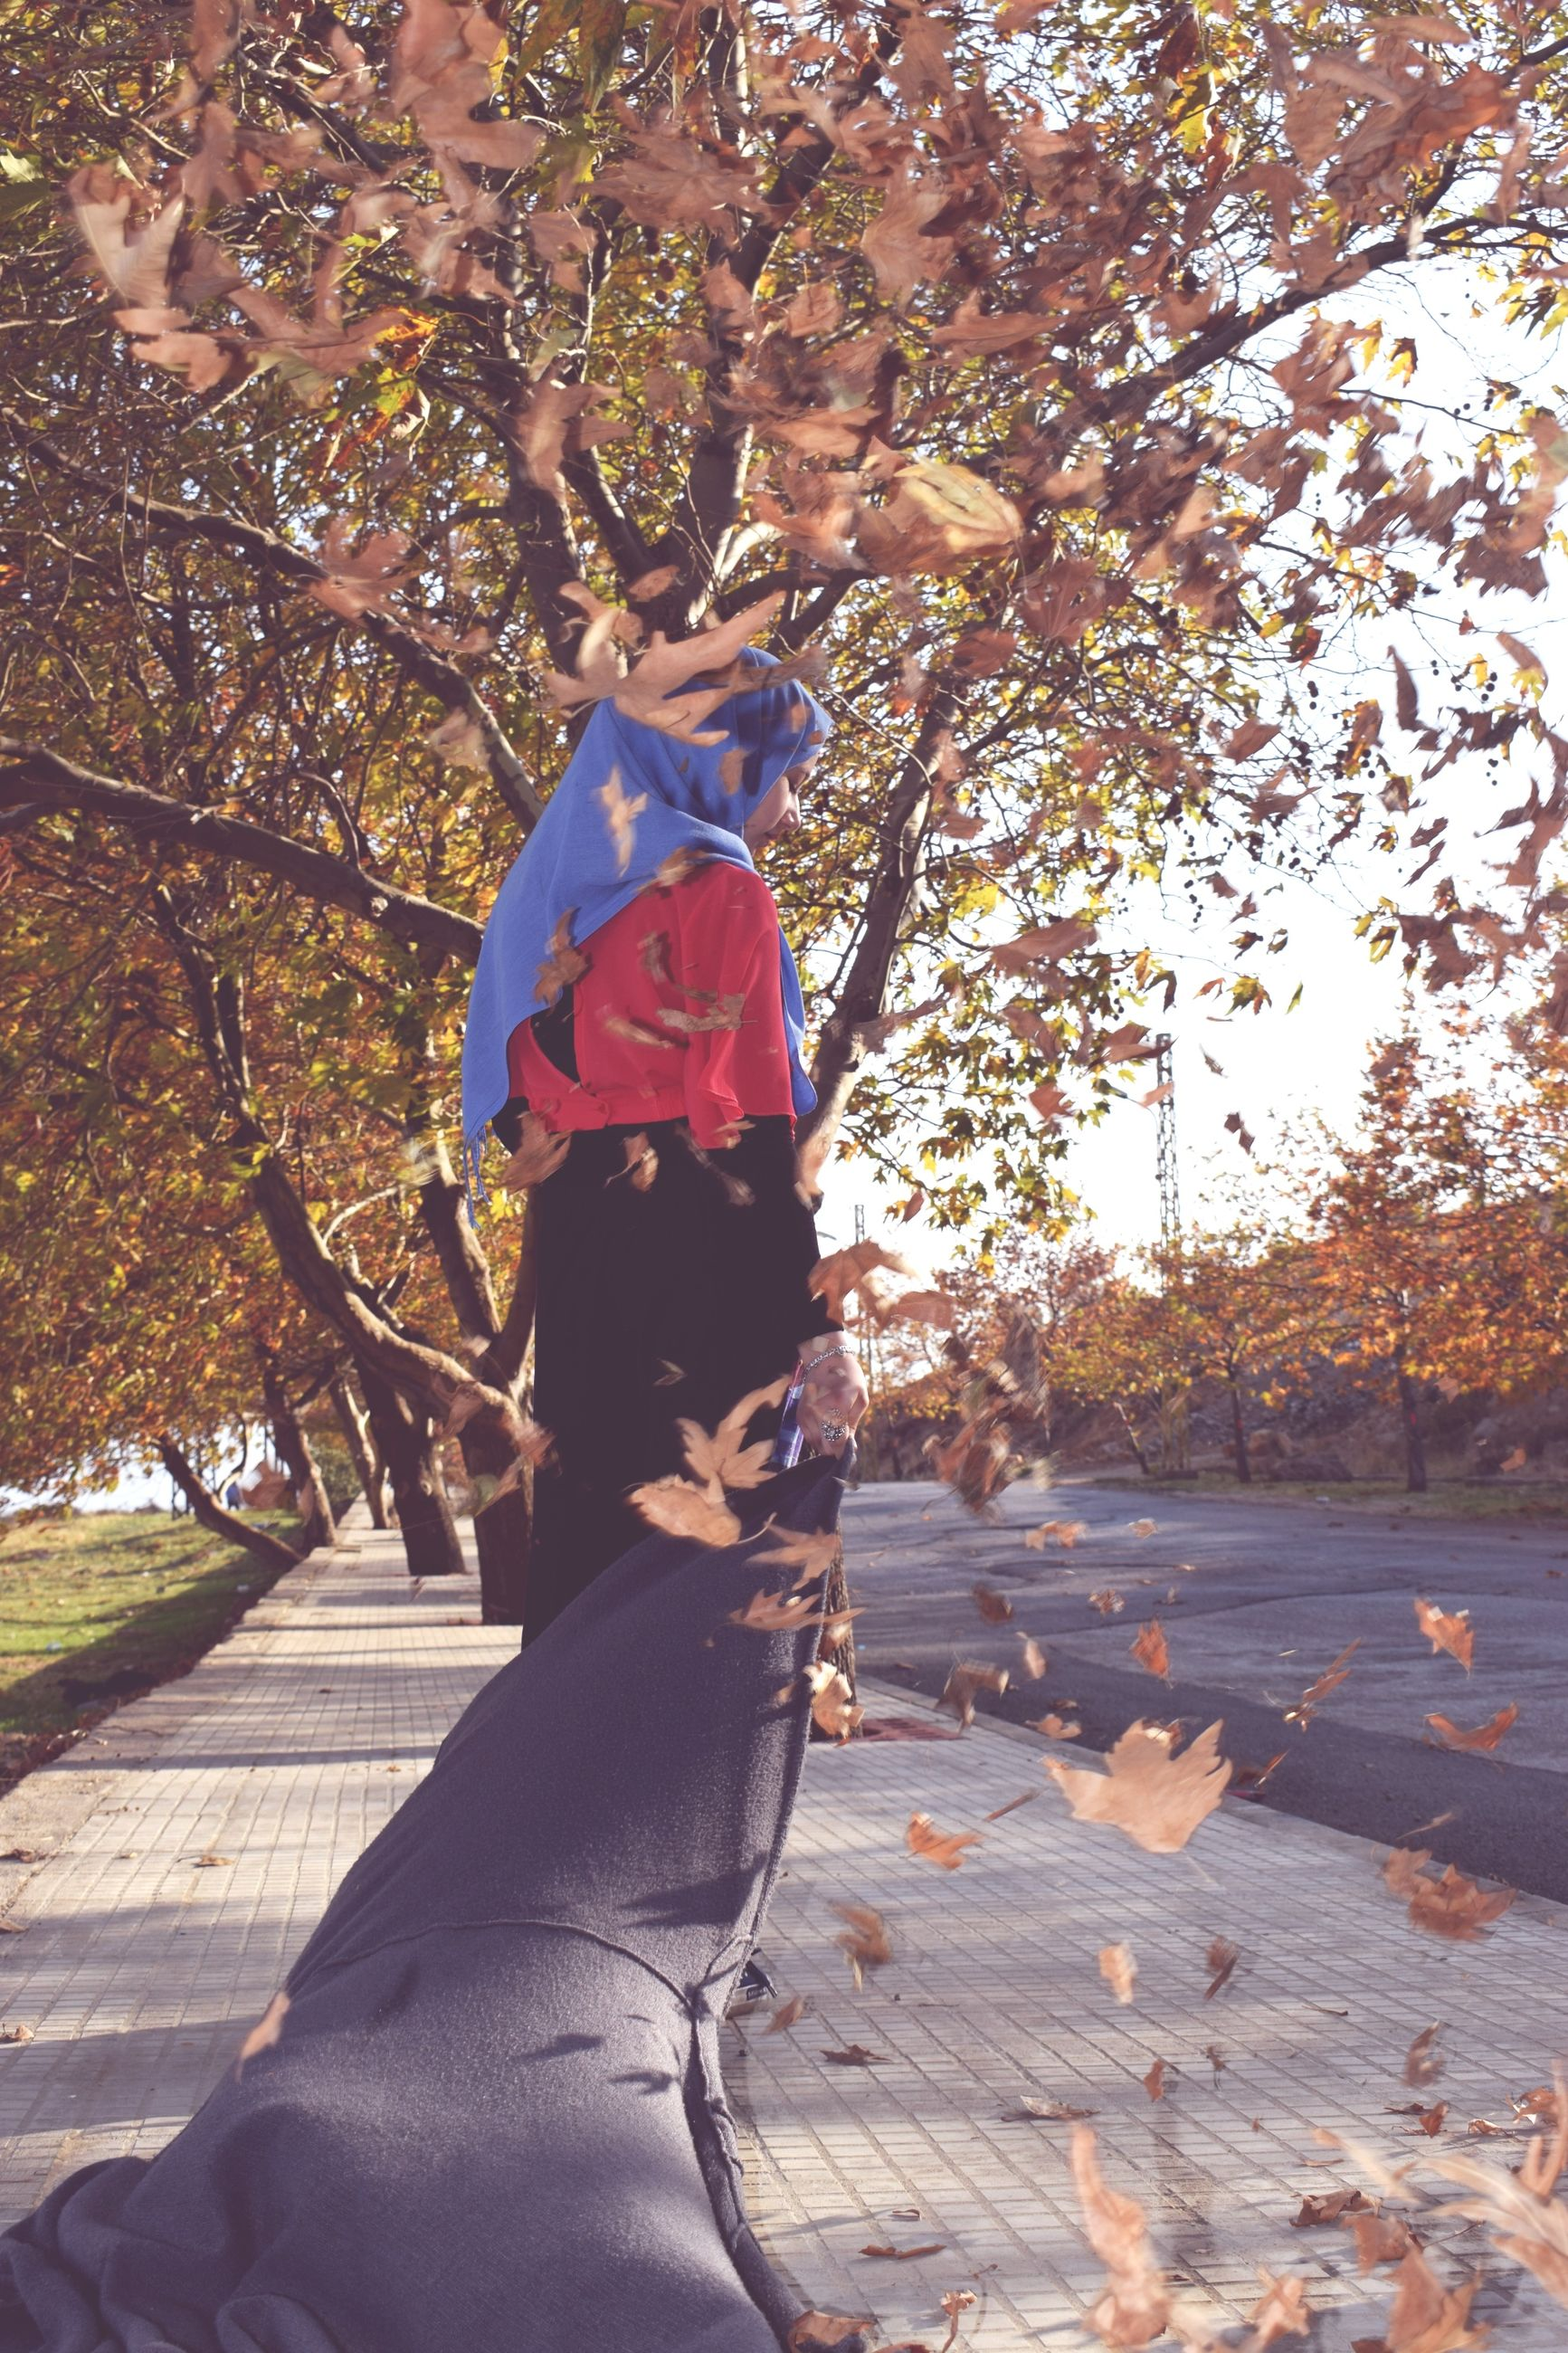 tree, autumn, real people, outdoors, leaf, day, branch, nature, leisure activity, lifestyles, full length, beauty in nature, young women, young adult, people